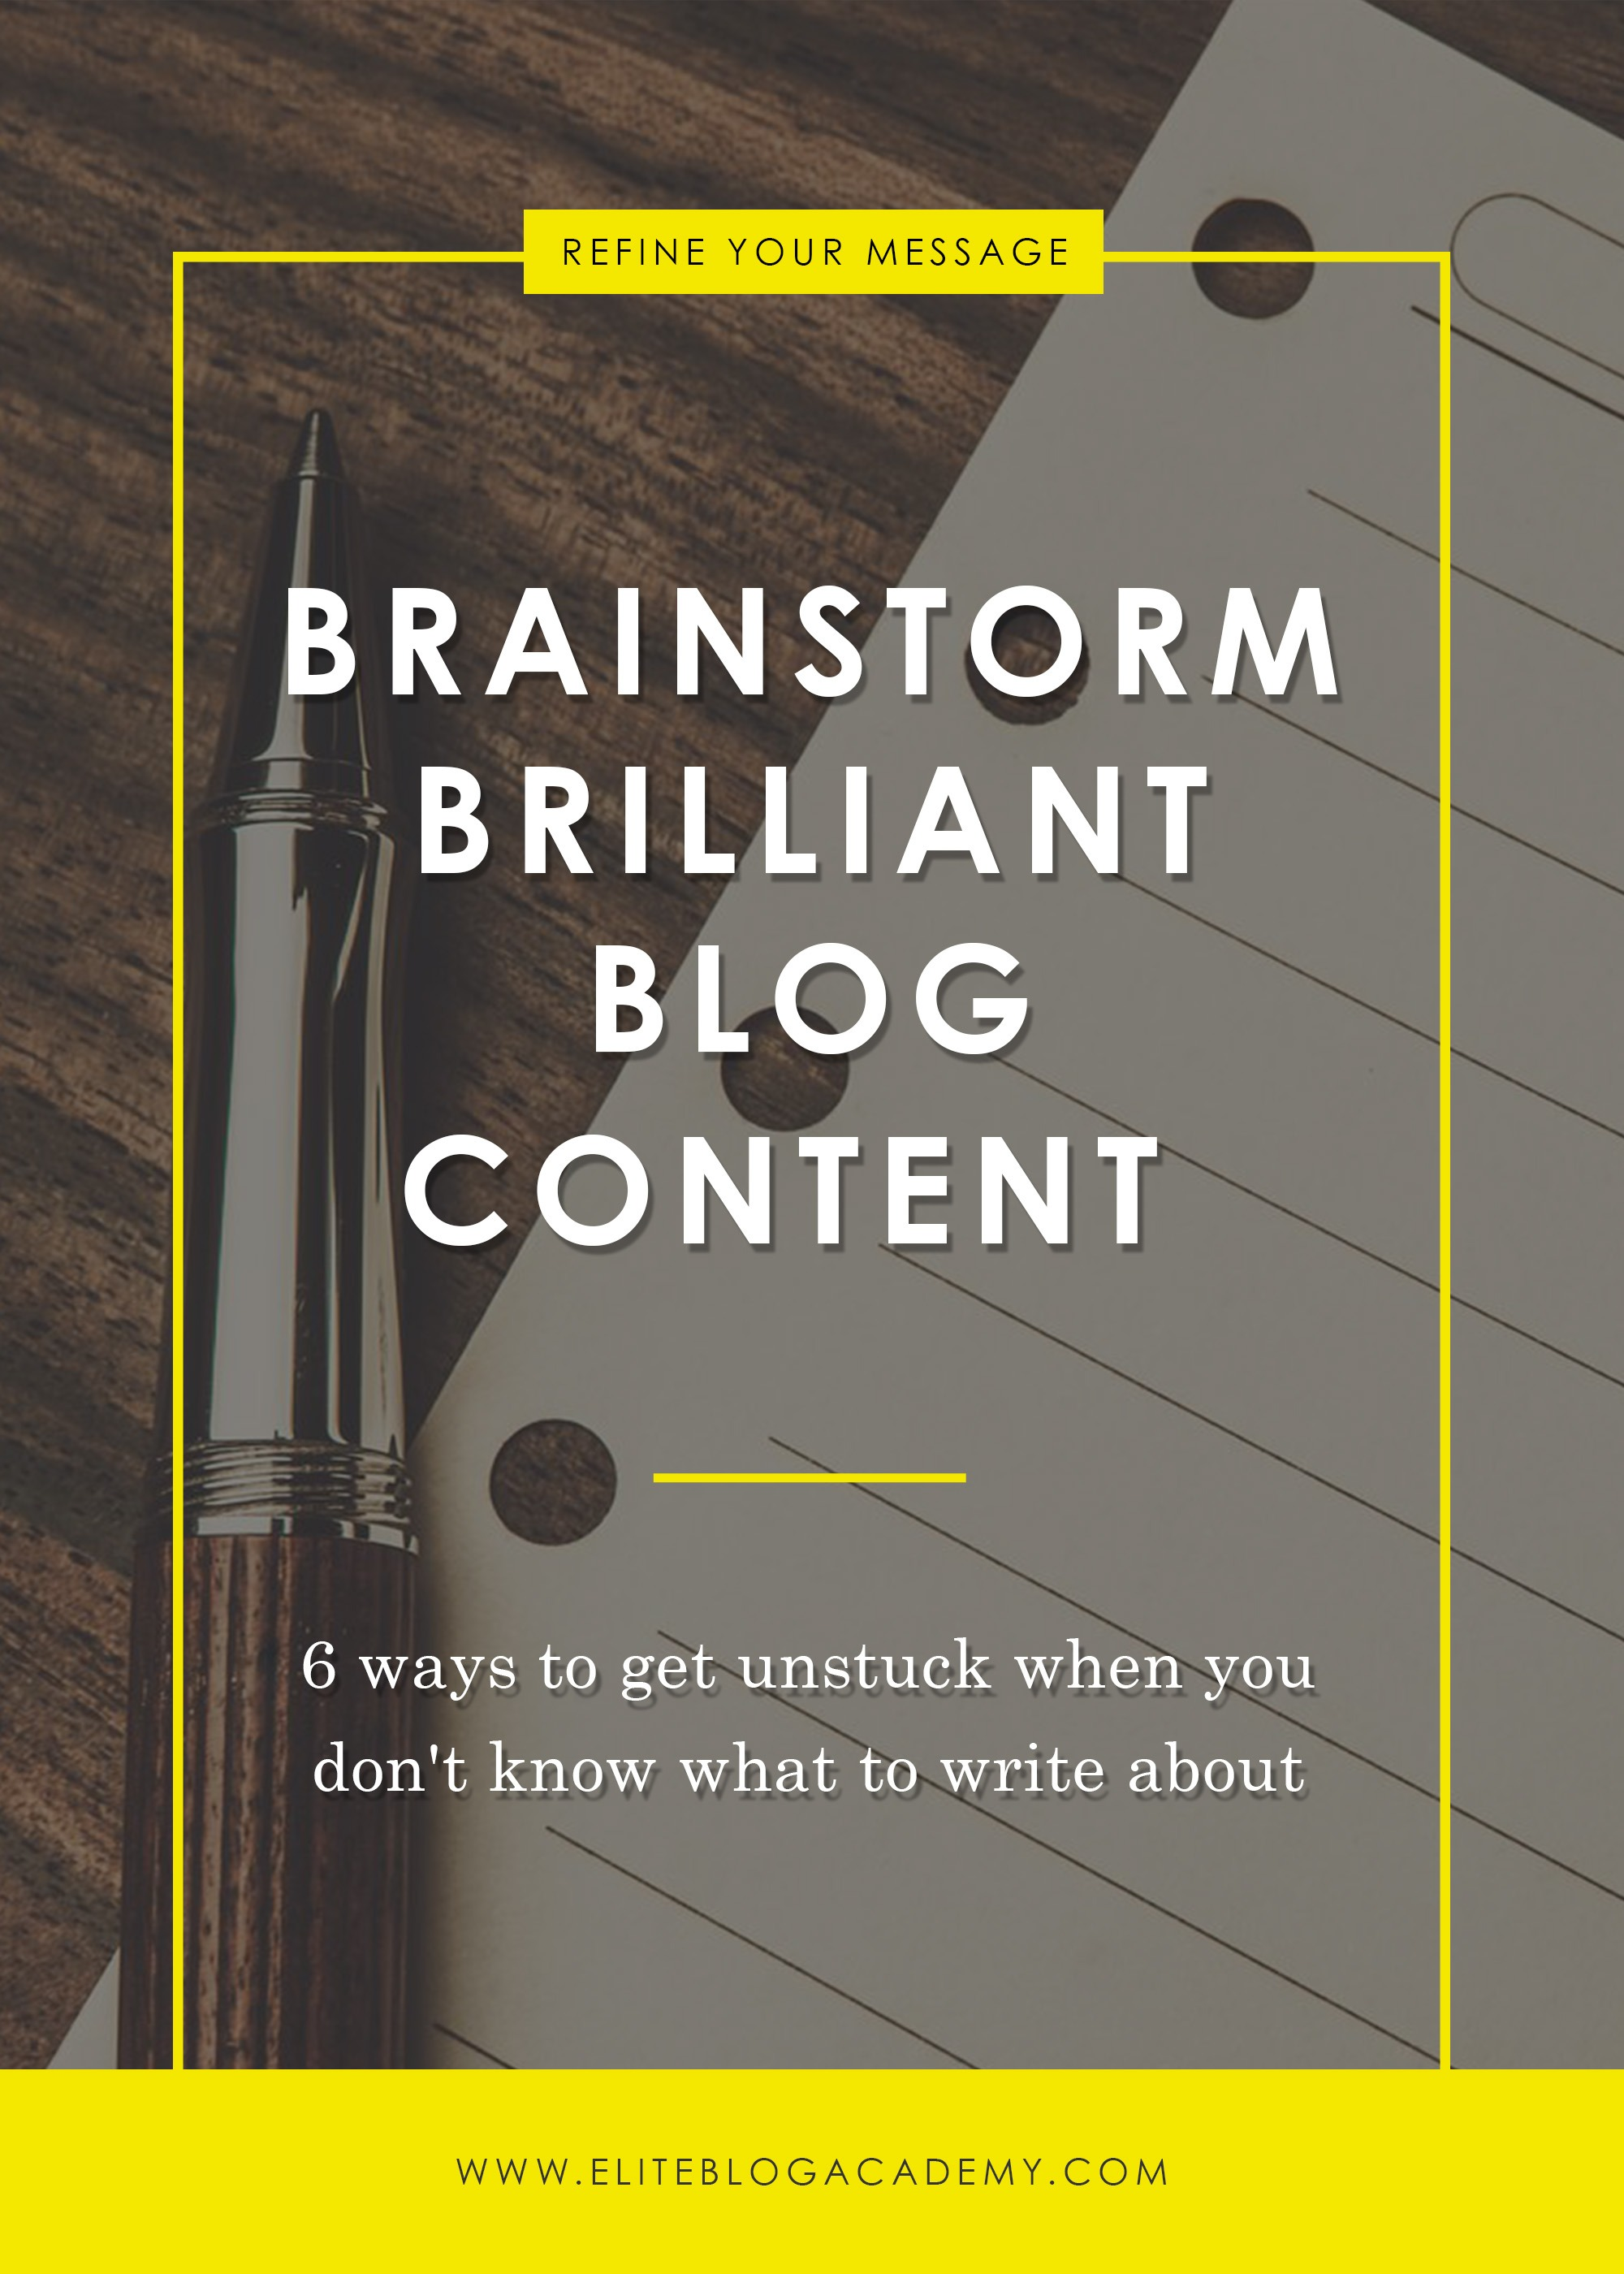 Brainstorm Brilliant Blog Content | How to Conquer Writer's Block | Blog Content | Finding Content | Affiliate Marketing 101 | How to Make Money Blogging | Brand New Blogger | Blogging Tips | EBA | Elite Blog Academy | How to Blog | Blogging 101